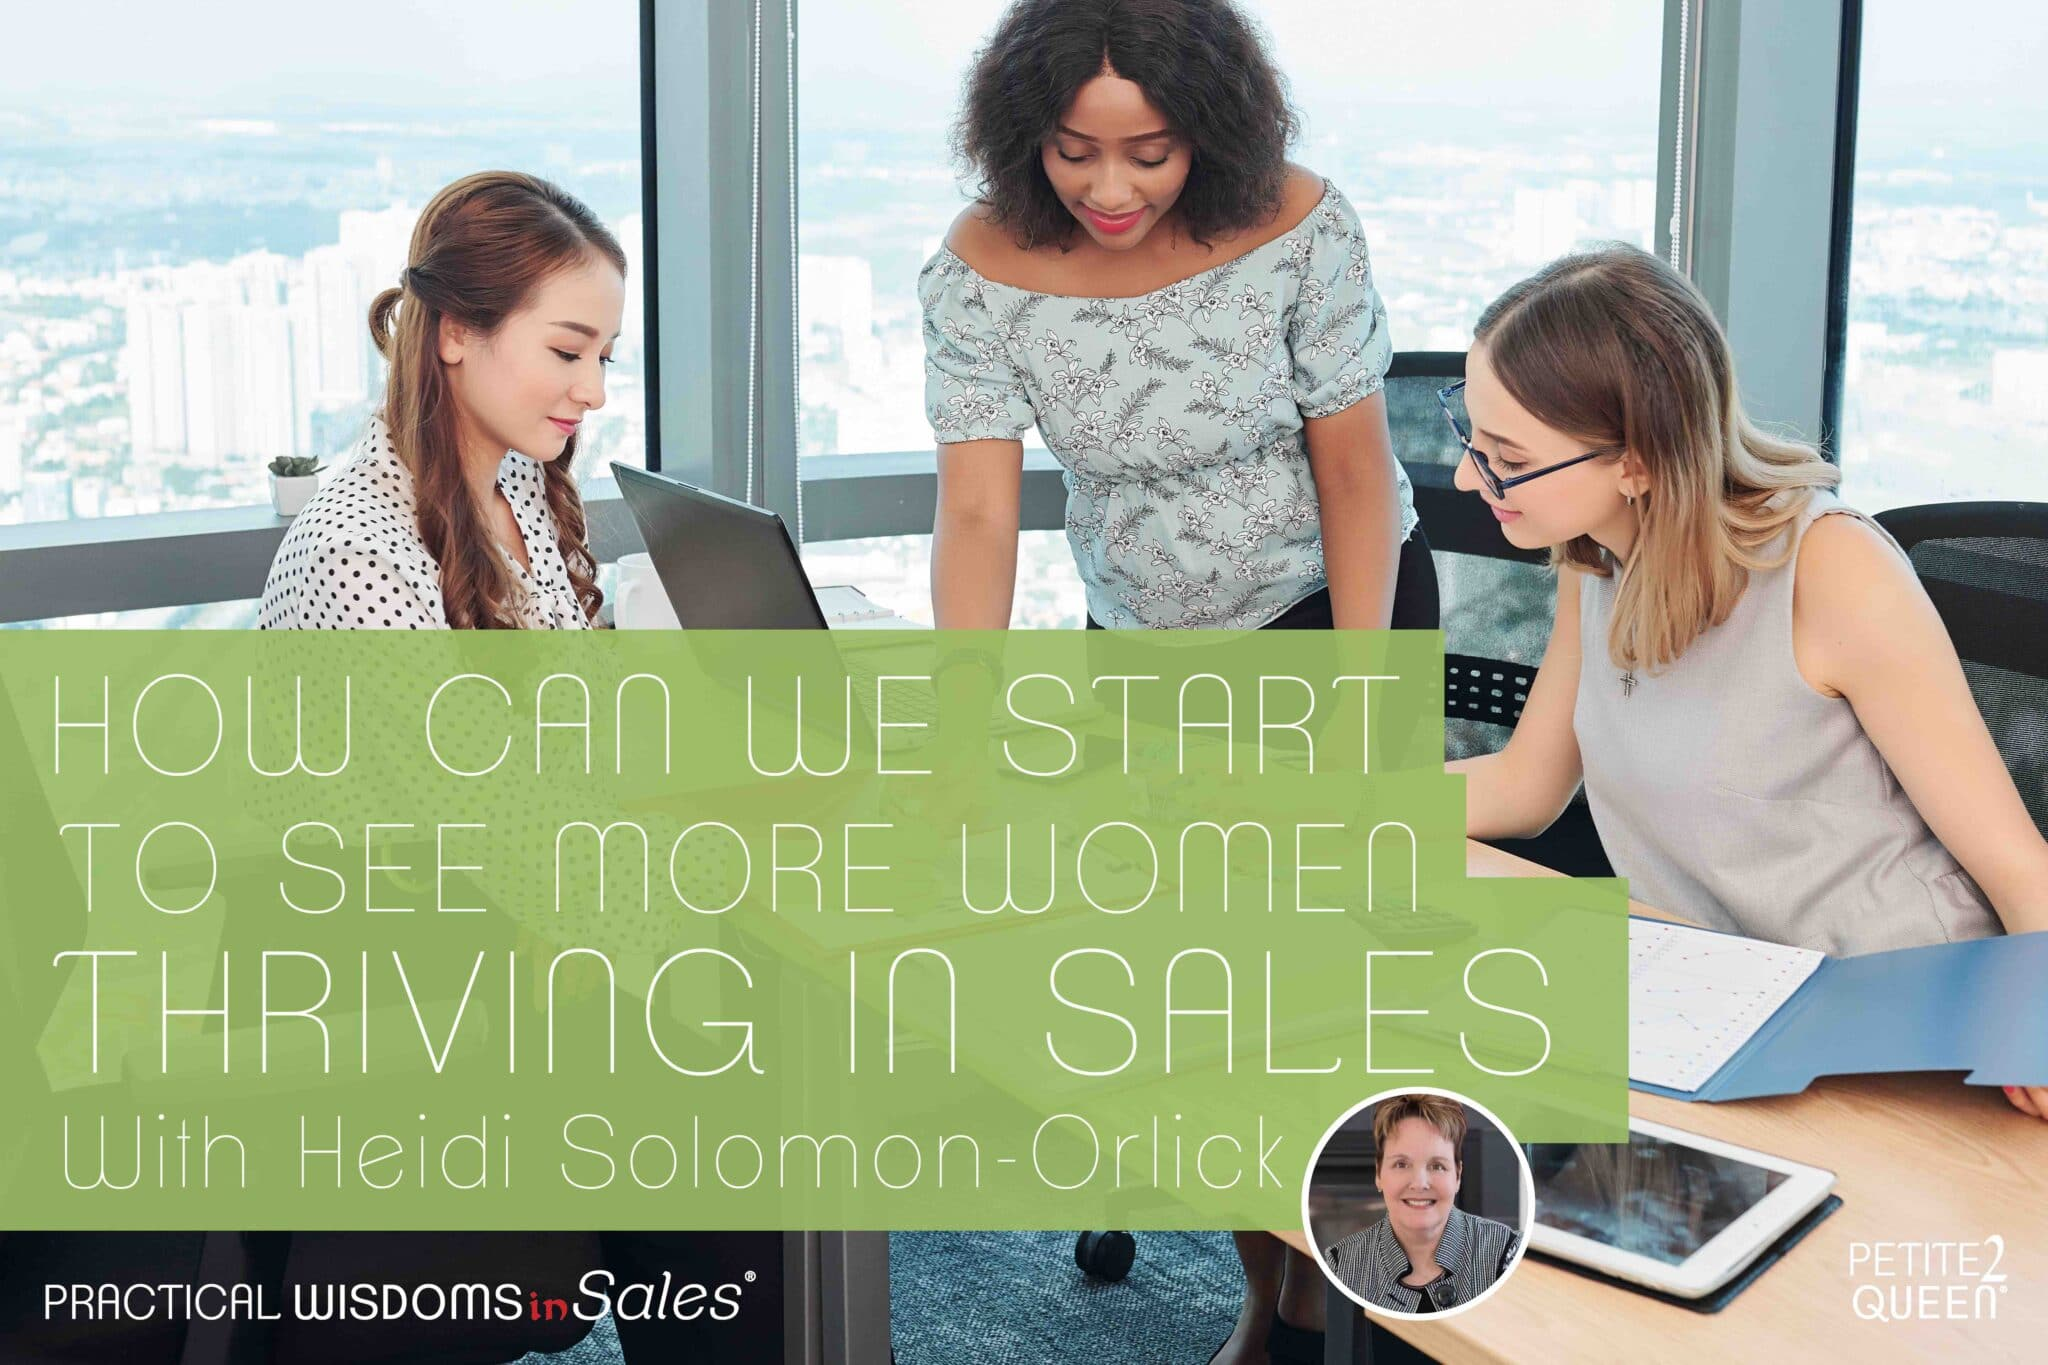 How Can We Start to See More Women Thriving in Sales?